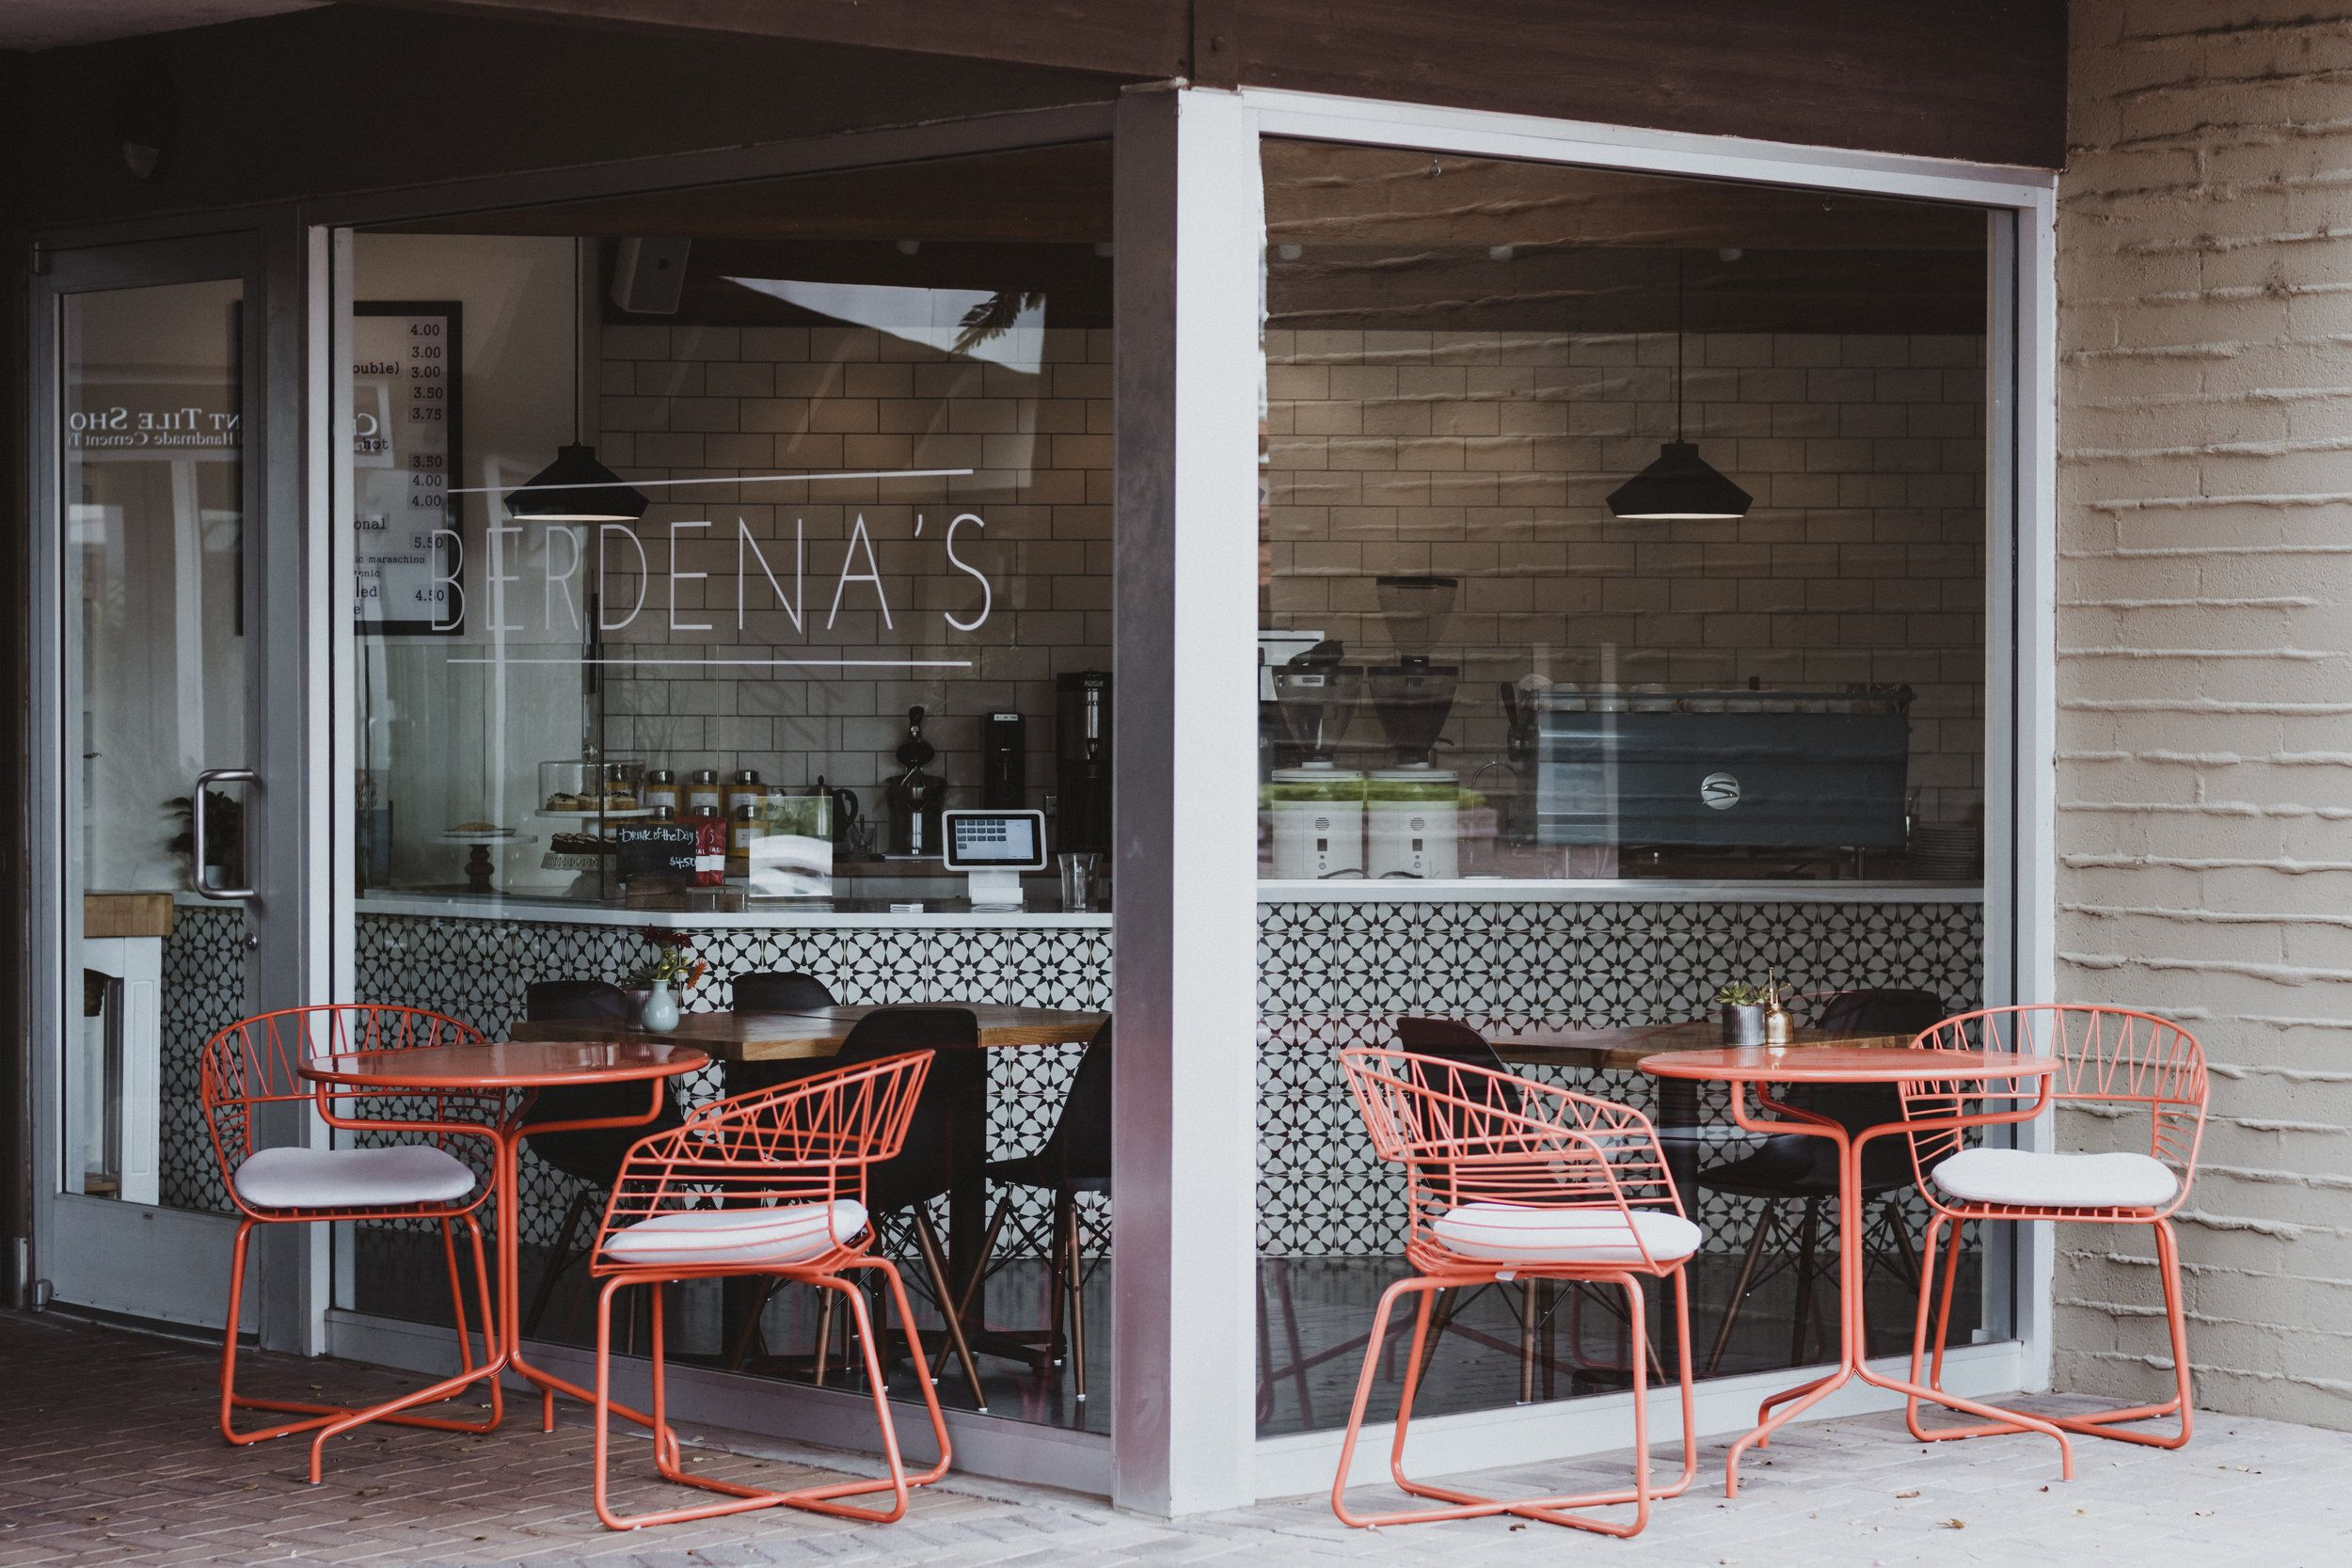 The Most Instagrammable Coffee Shops In Phoenix Bloguettes Coffee Shop Cute Coffee Shop Coffee Places